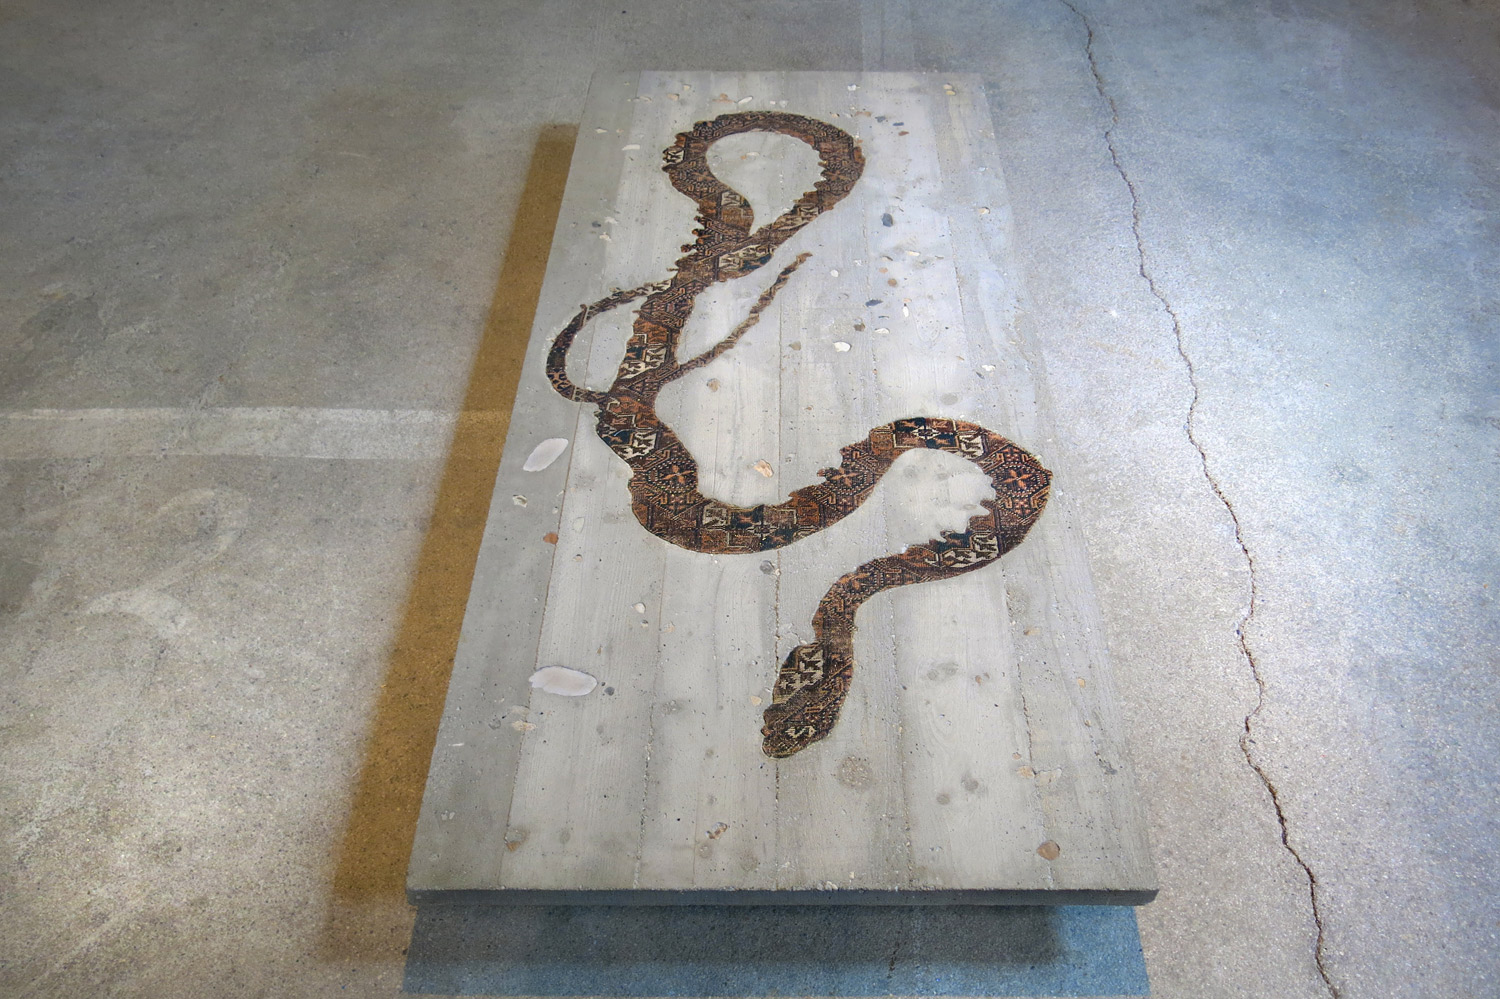 web222-noemi-kiss-marion-friedmann-gallery-Serpent-Table-cut-out-rug-inlaid-in-concrete-Hipphalle-photo-MarionFriedmann.jpg